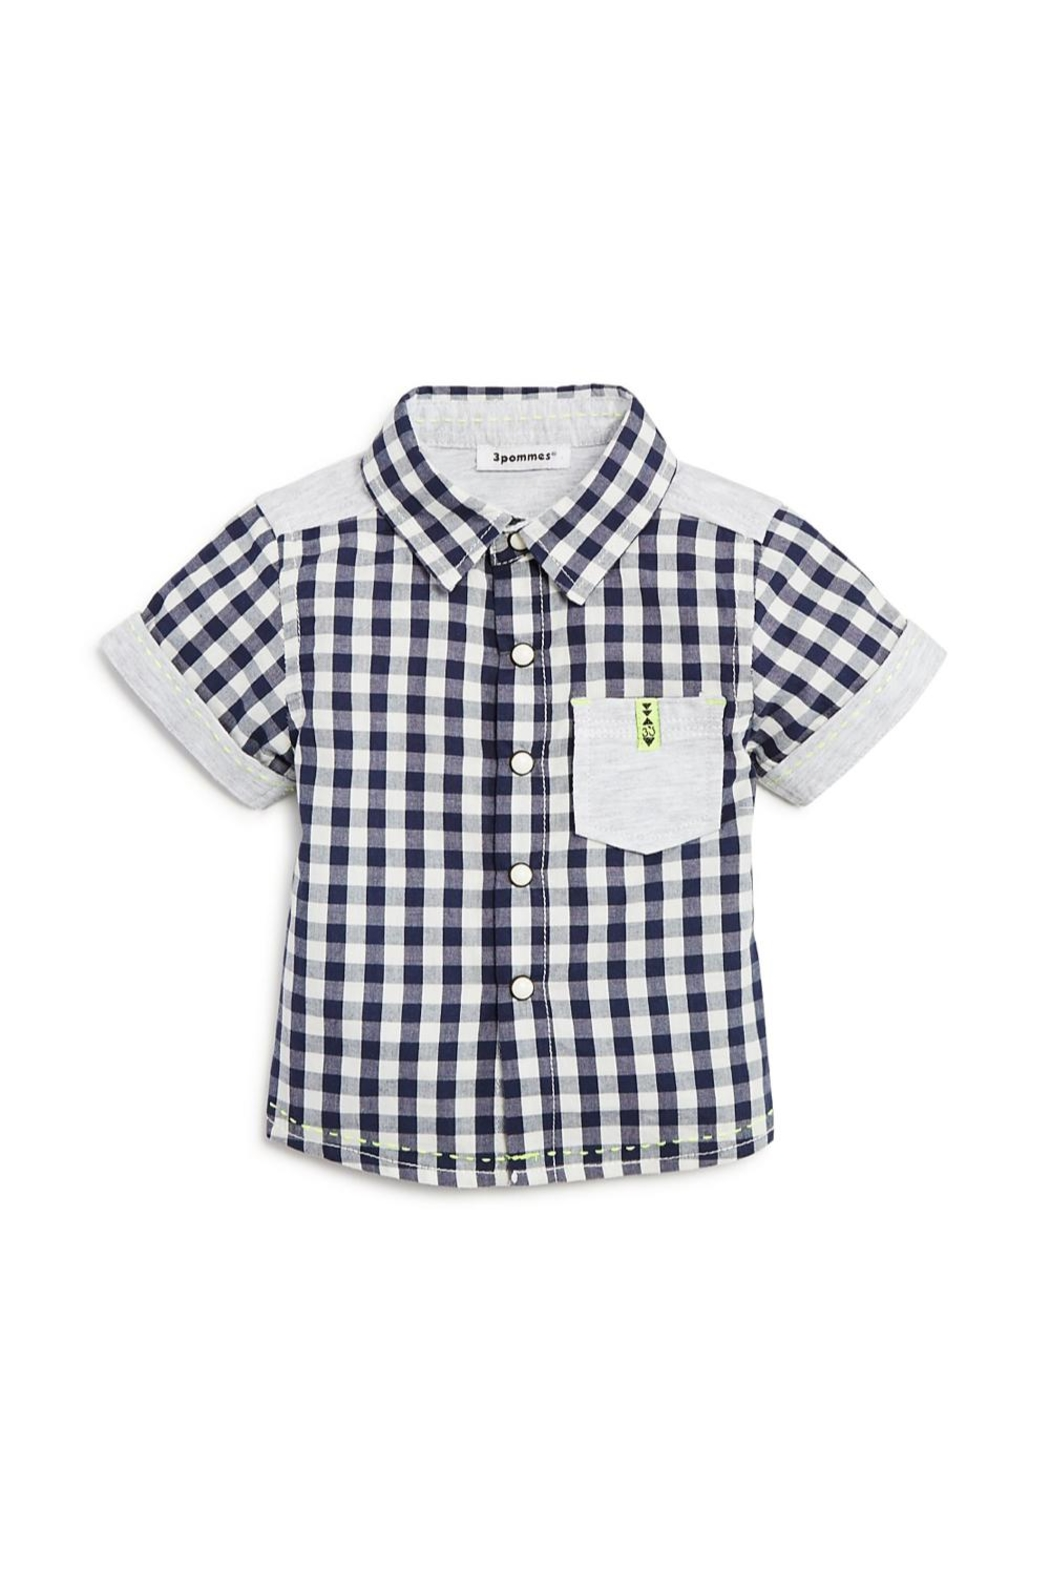 3 Pommes Gingham Short-Sleeve Shirt - Front Cropped Image